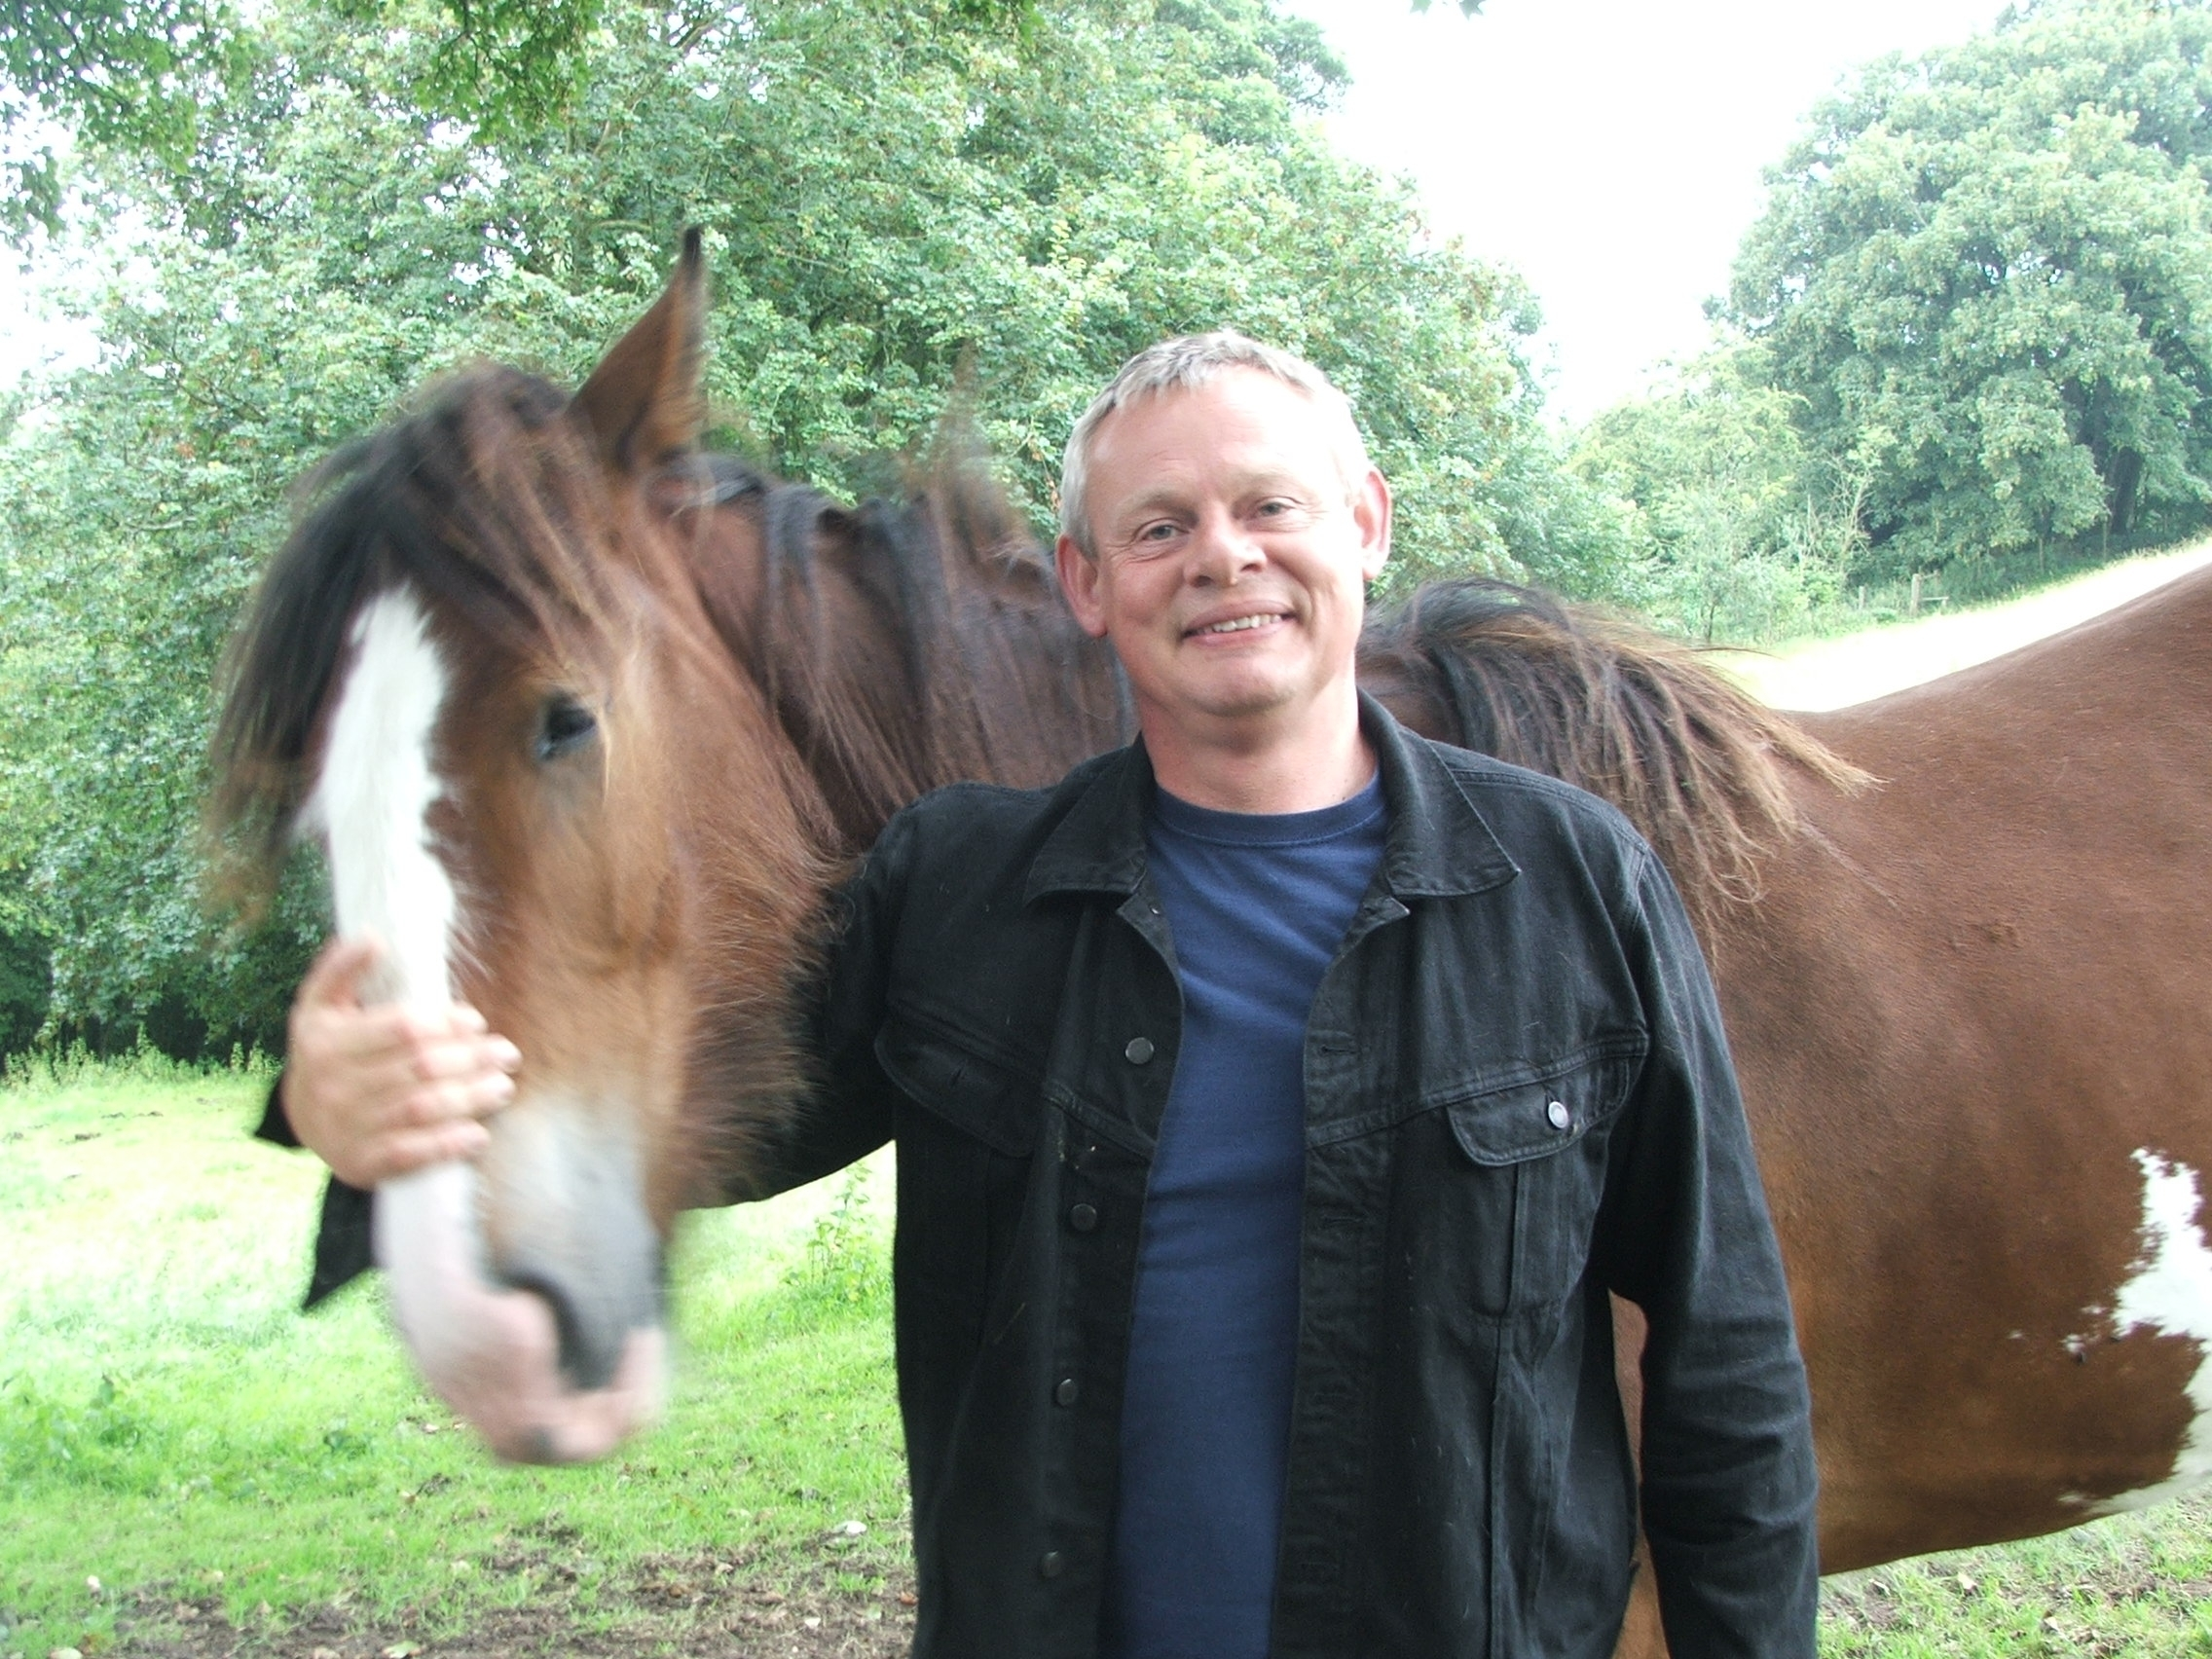 Martin Clunes at his Beamisnter home